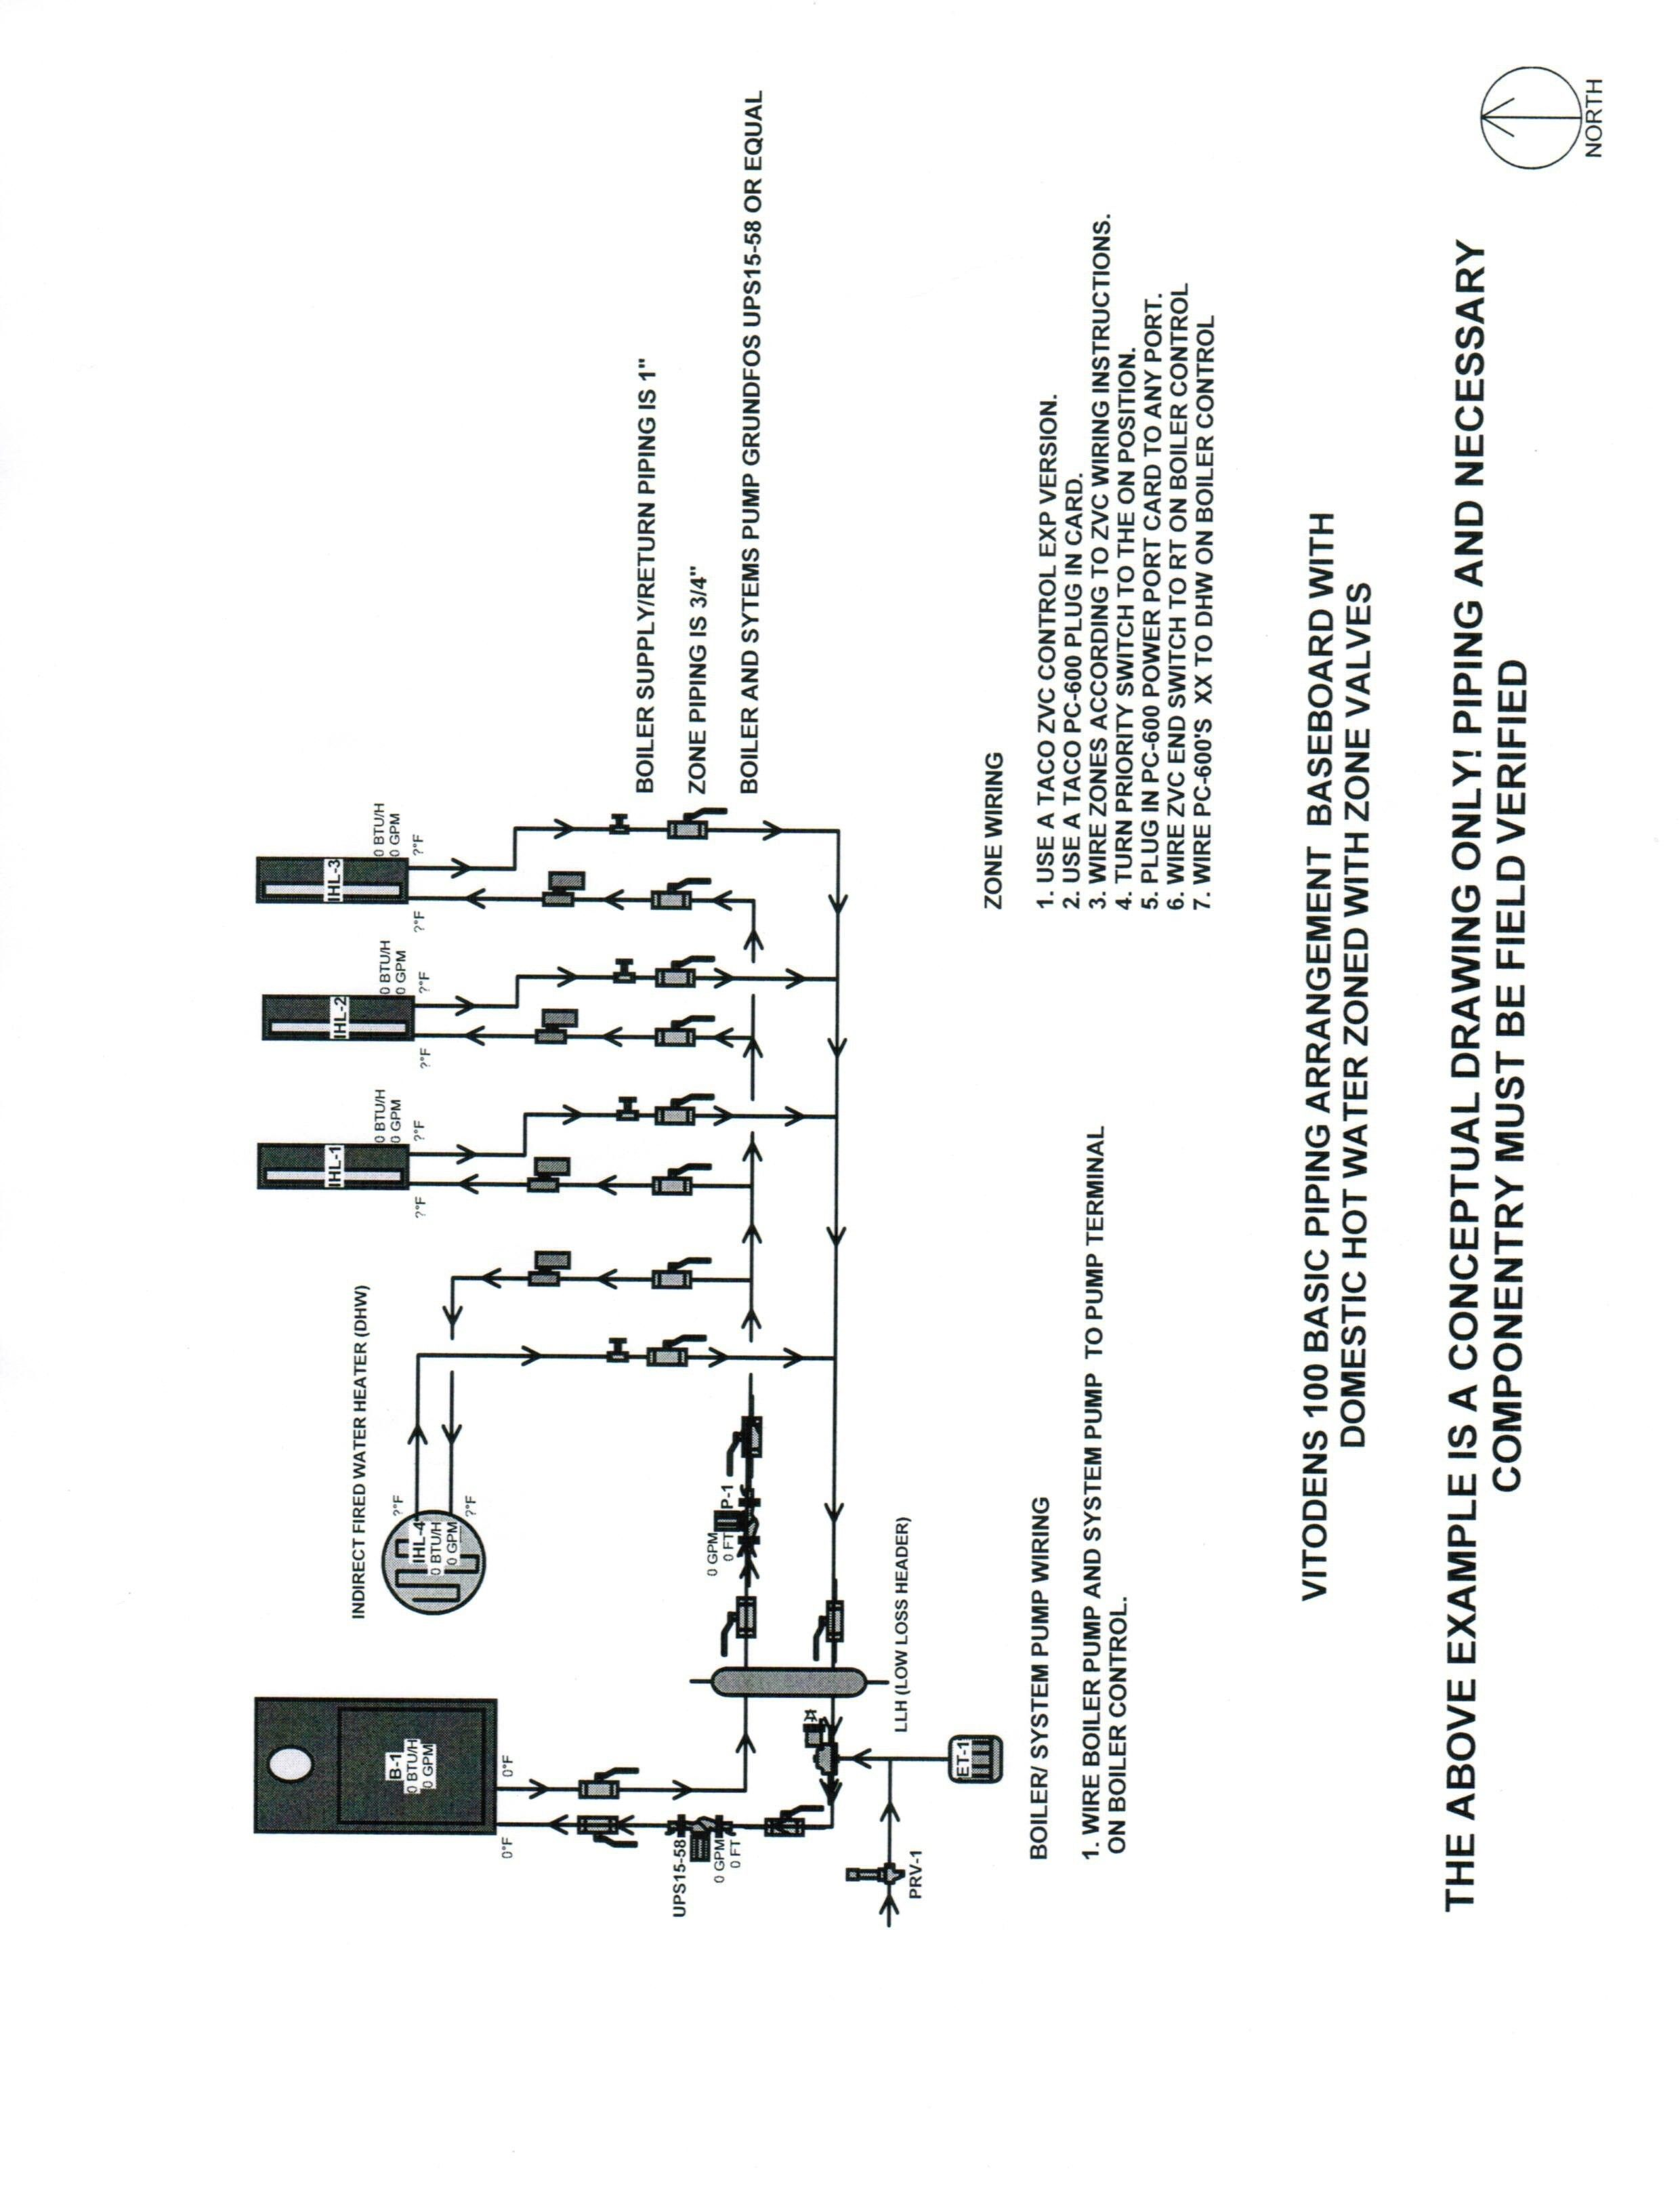 Unique Honeywell Thermostat Th6110d1021 Wiring Diagram Diagram Honeywell Thermostat